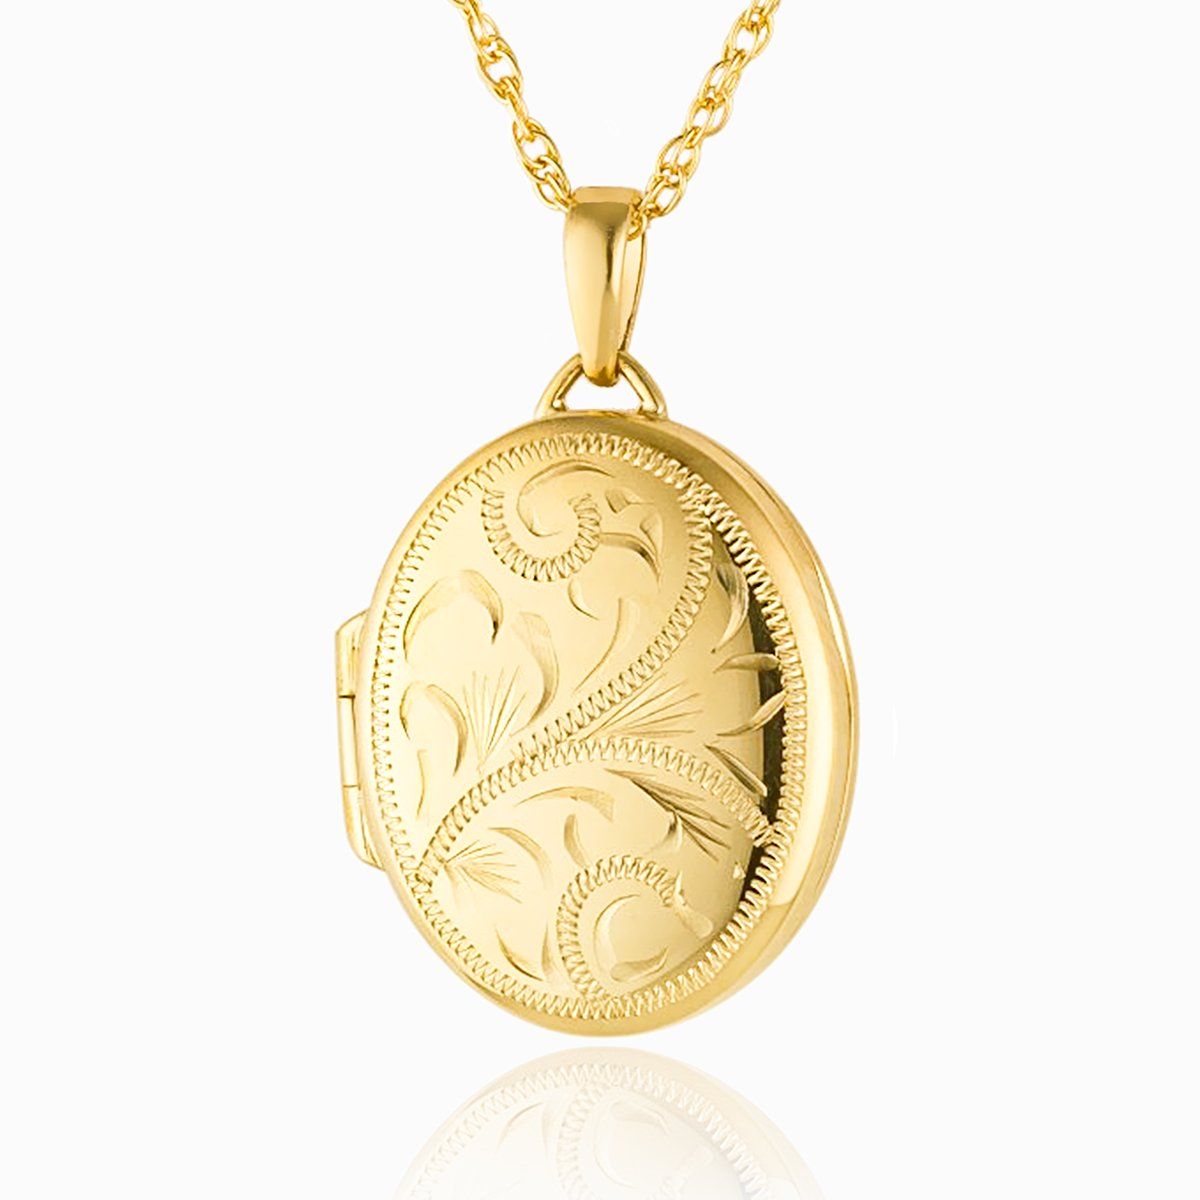 Product title: Medium Oval Gold Engraved, product type: Locket